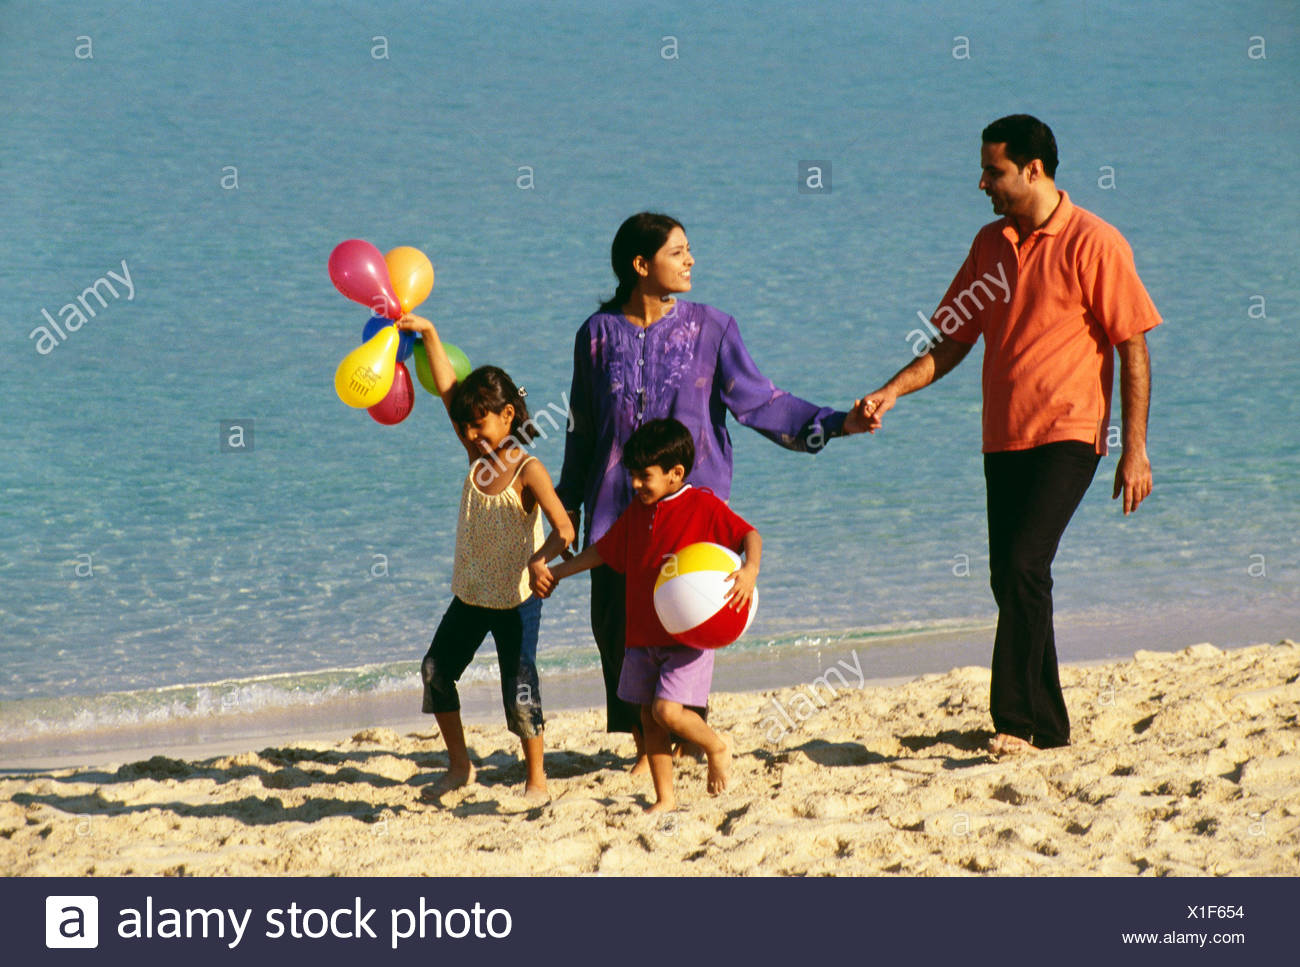 A family takes a stroll at the beach on a sunny day. Stock Photo